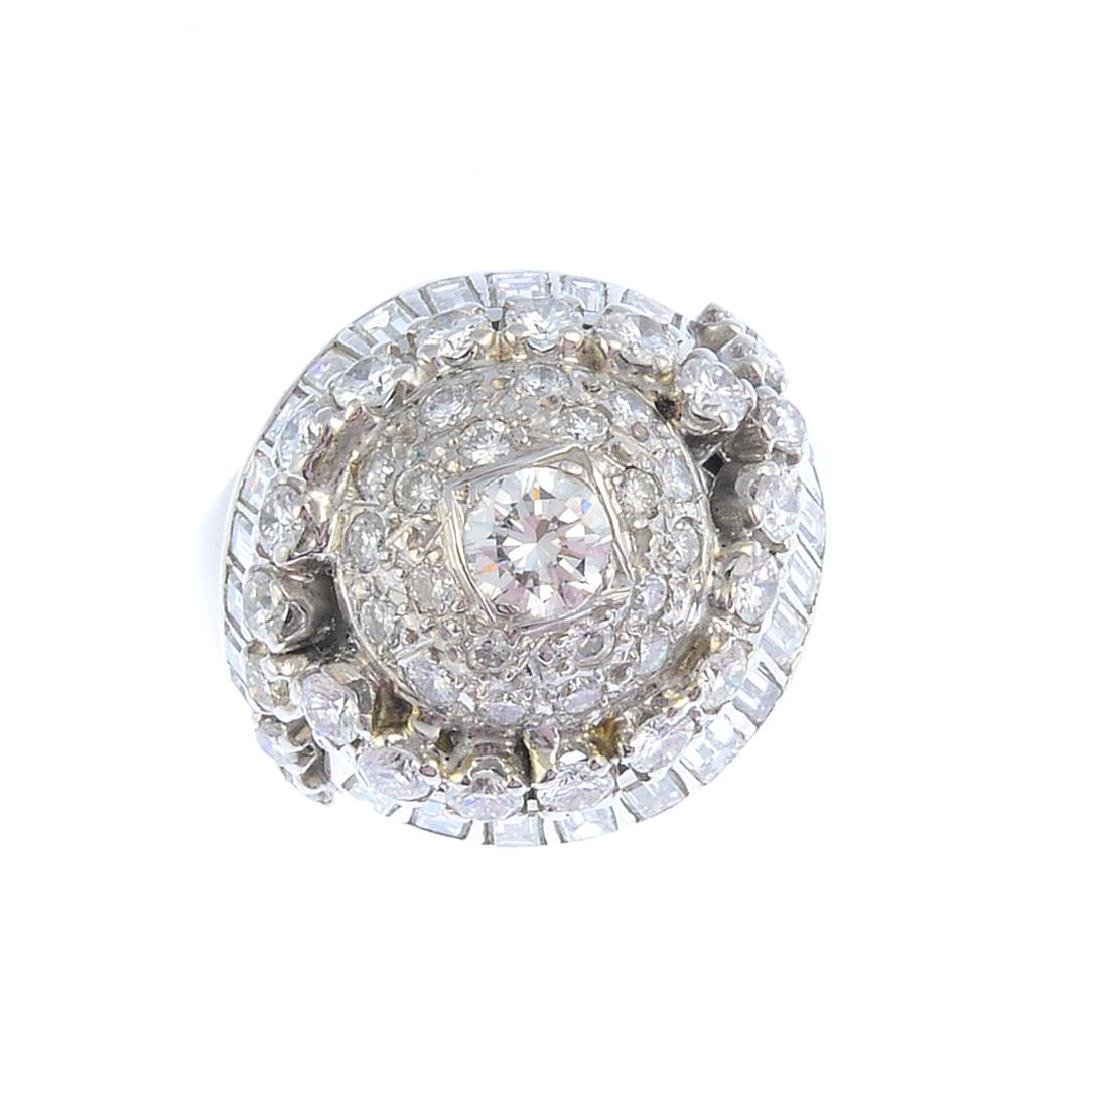 A platinum diamond cocktail ring. Of bombe design, the